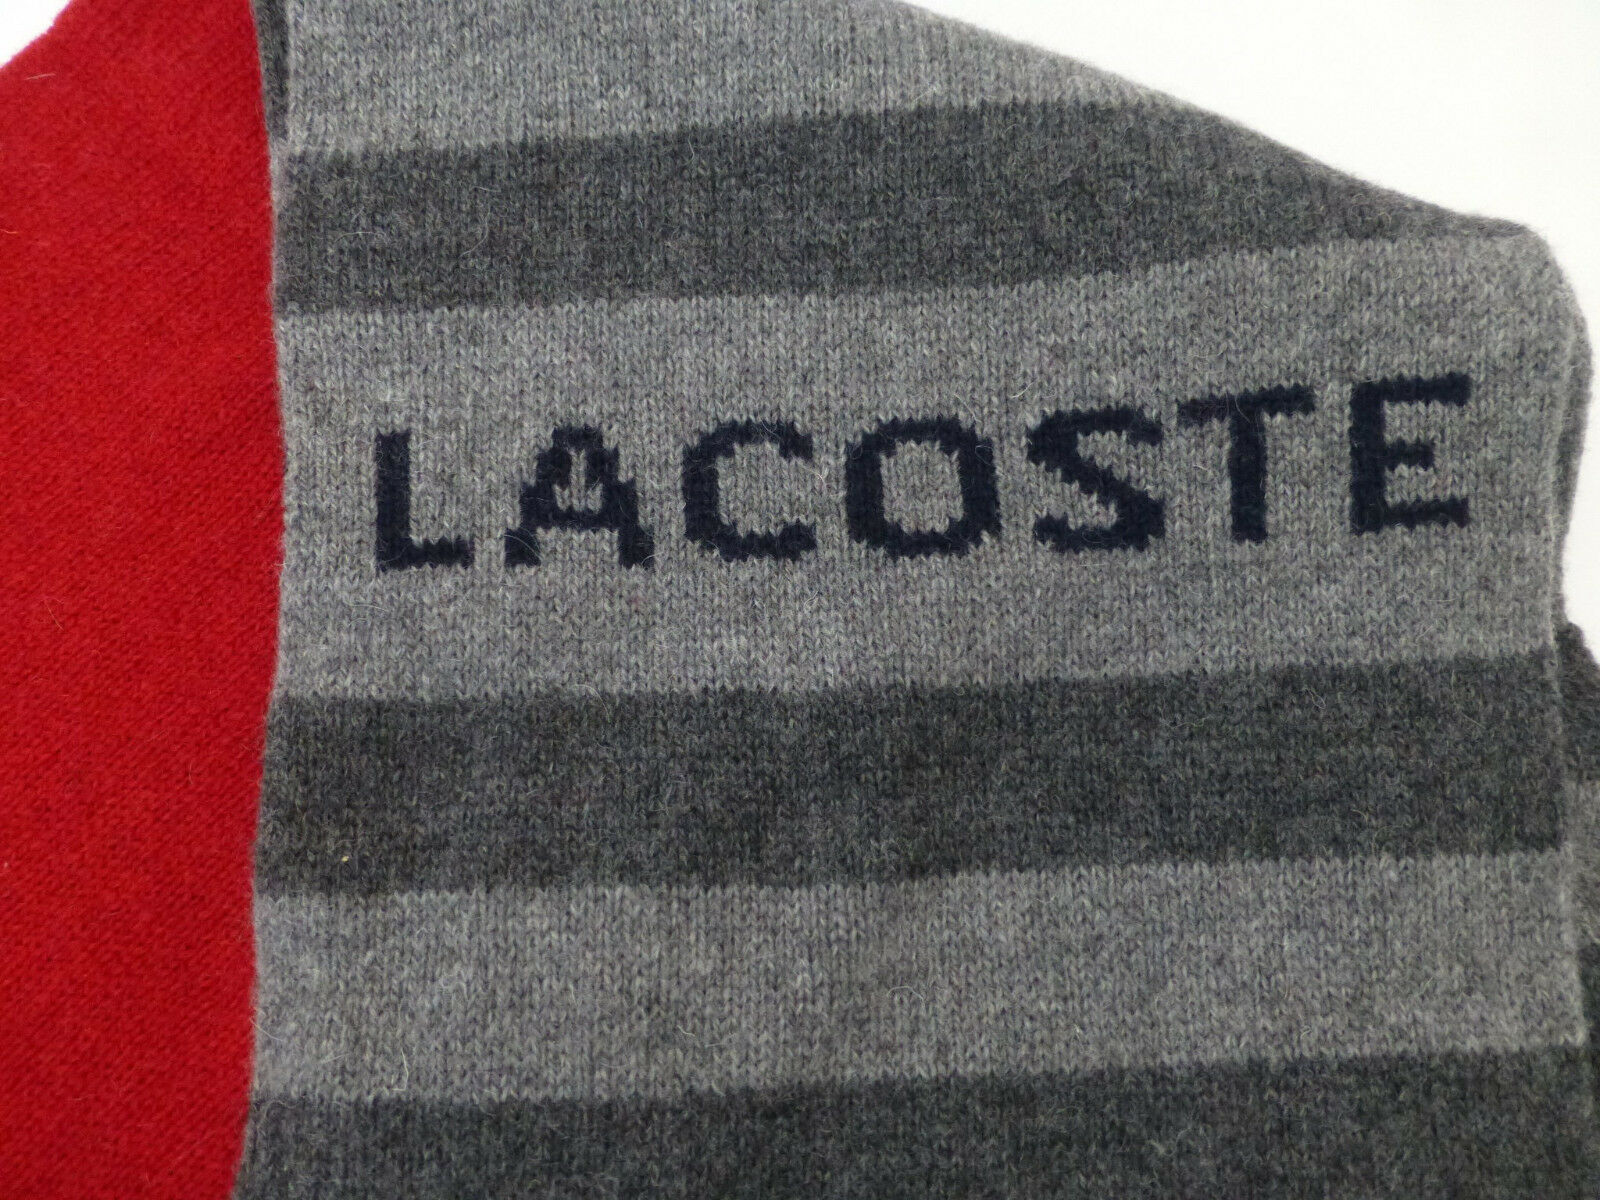 LACOSTE Scarf Scarf Scarf Ribbed Knit Woven Edge Multi Col Wool Blend Flaneel Scarves New | Großer Räumungsverkauf  1d451b